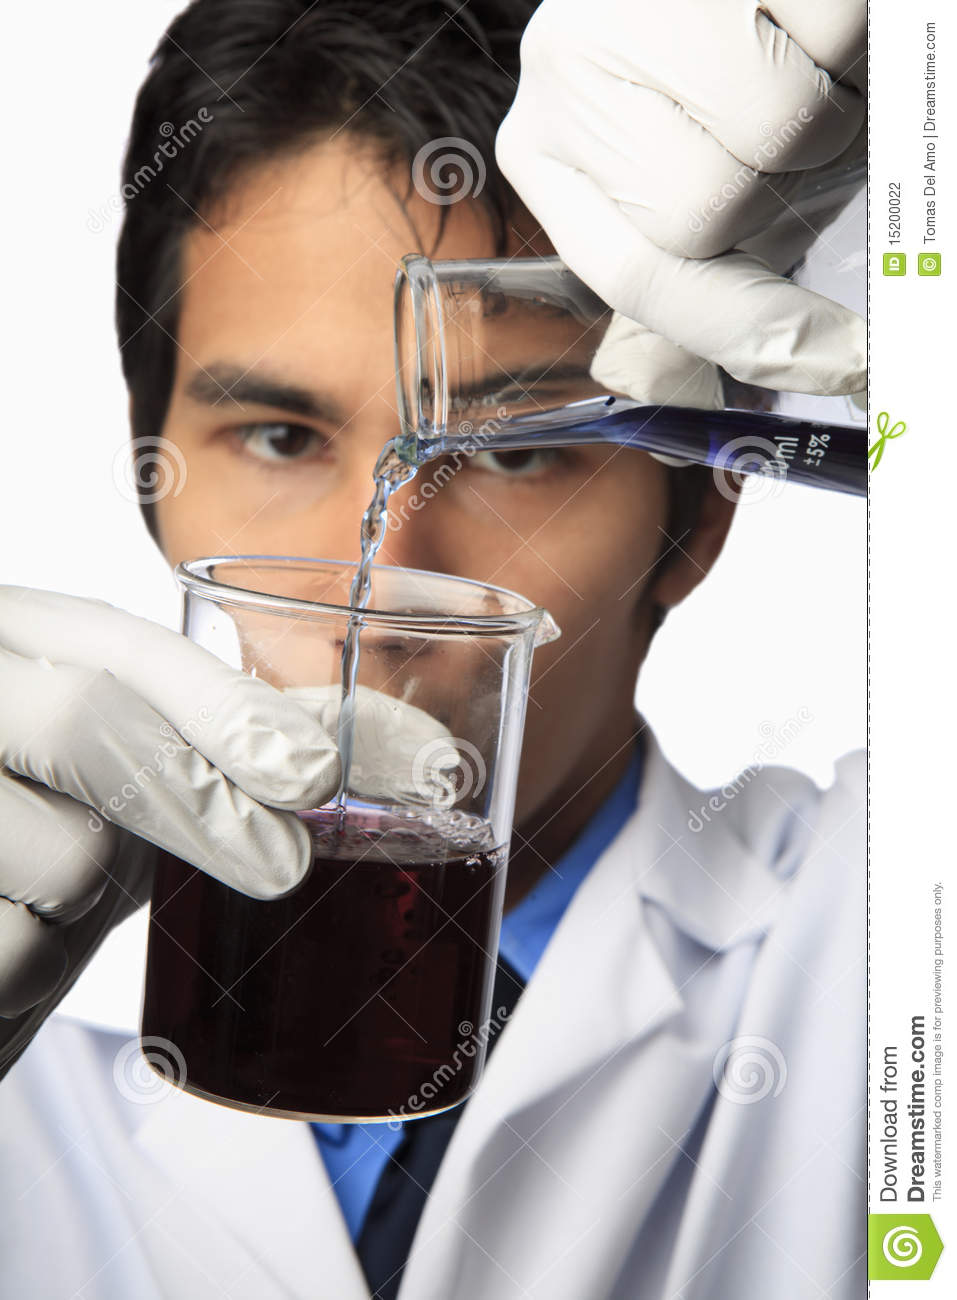 Lab Technician With Beaker And Flask Photography Image – Photo Lab Technician